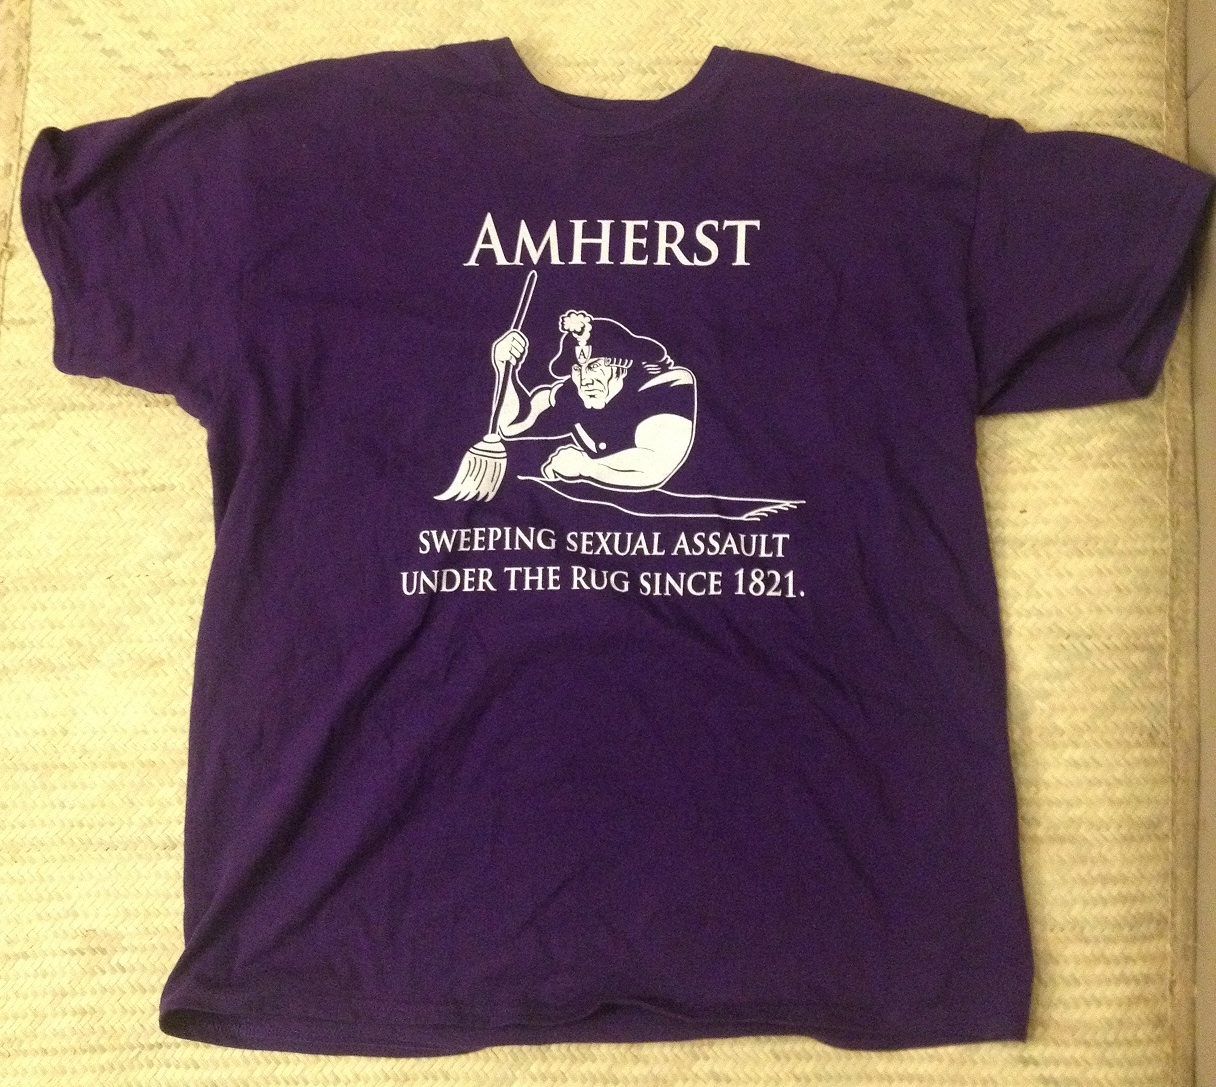 college censures td for offensive t shirt the amherst muck rake